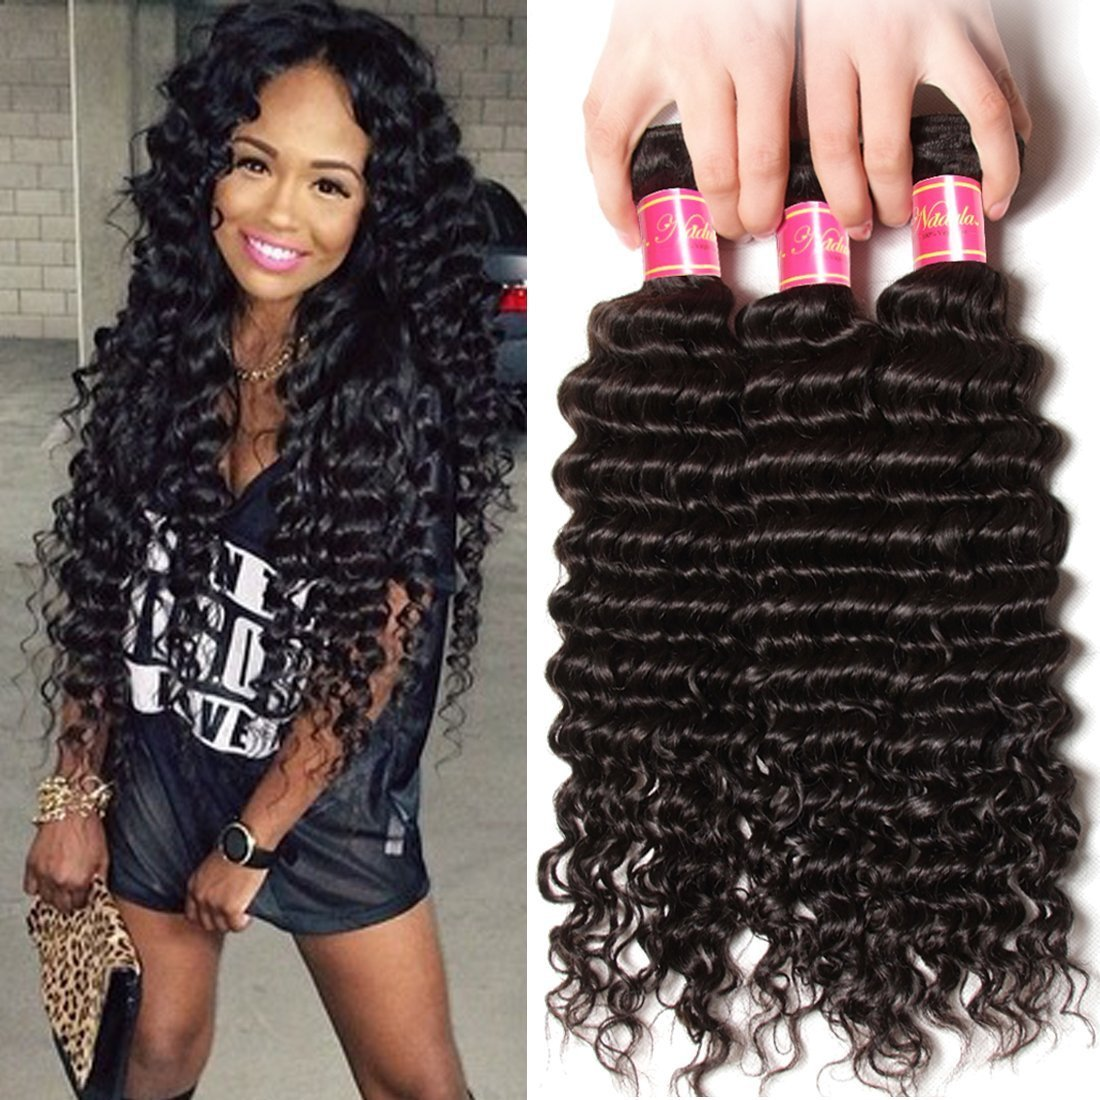 Nadula 6a Remy Virgin Brazilian Deep Wave Human Hair Extensions Pack of 3 Unprocessed Deep Wave Weave Natural Color Mixed Length 16inch 18inch 20inch by Nadula (Image #1)